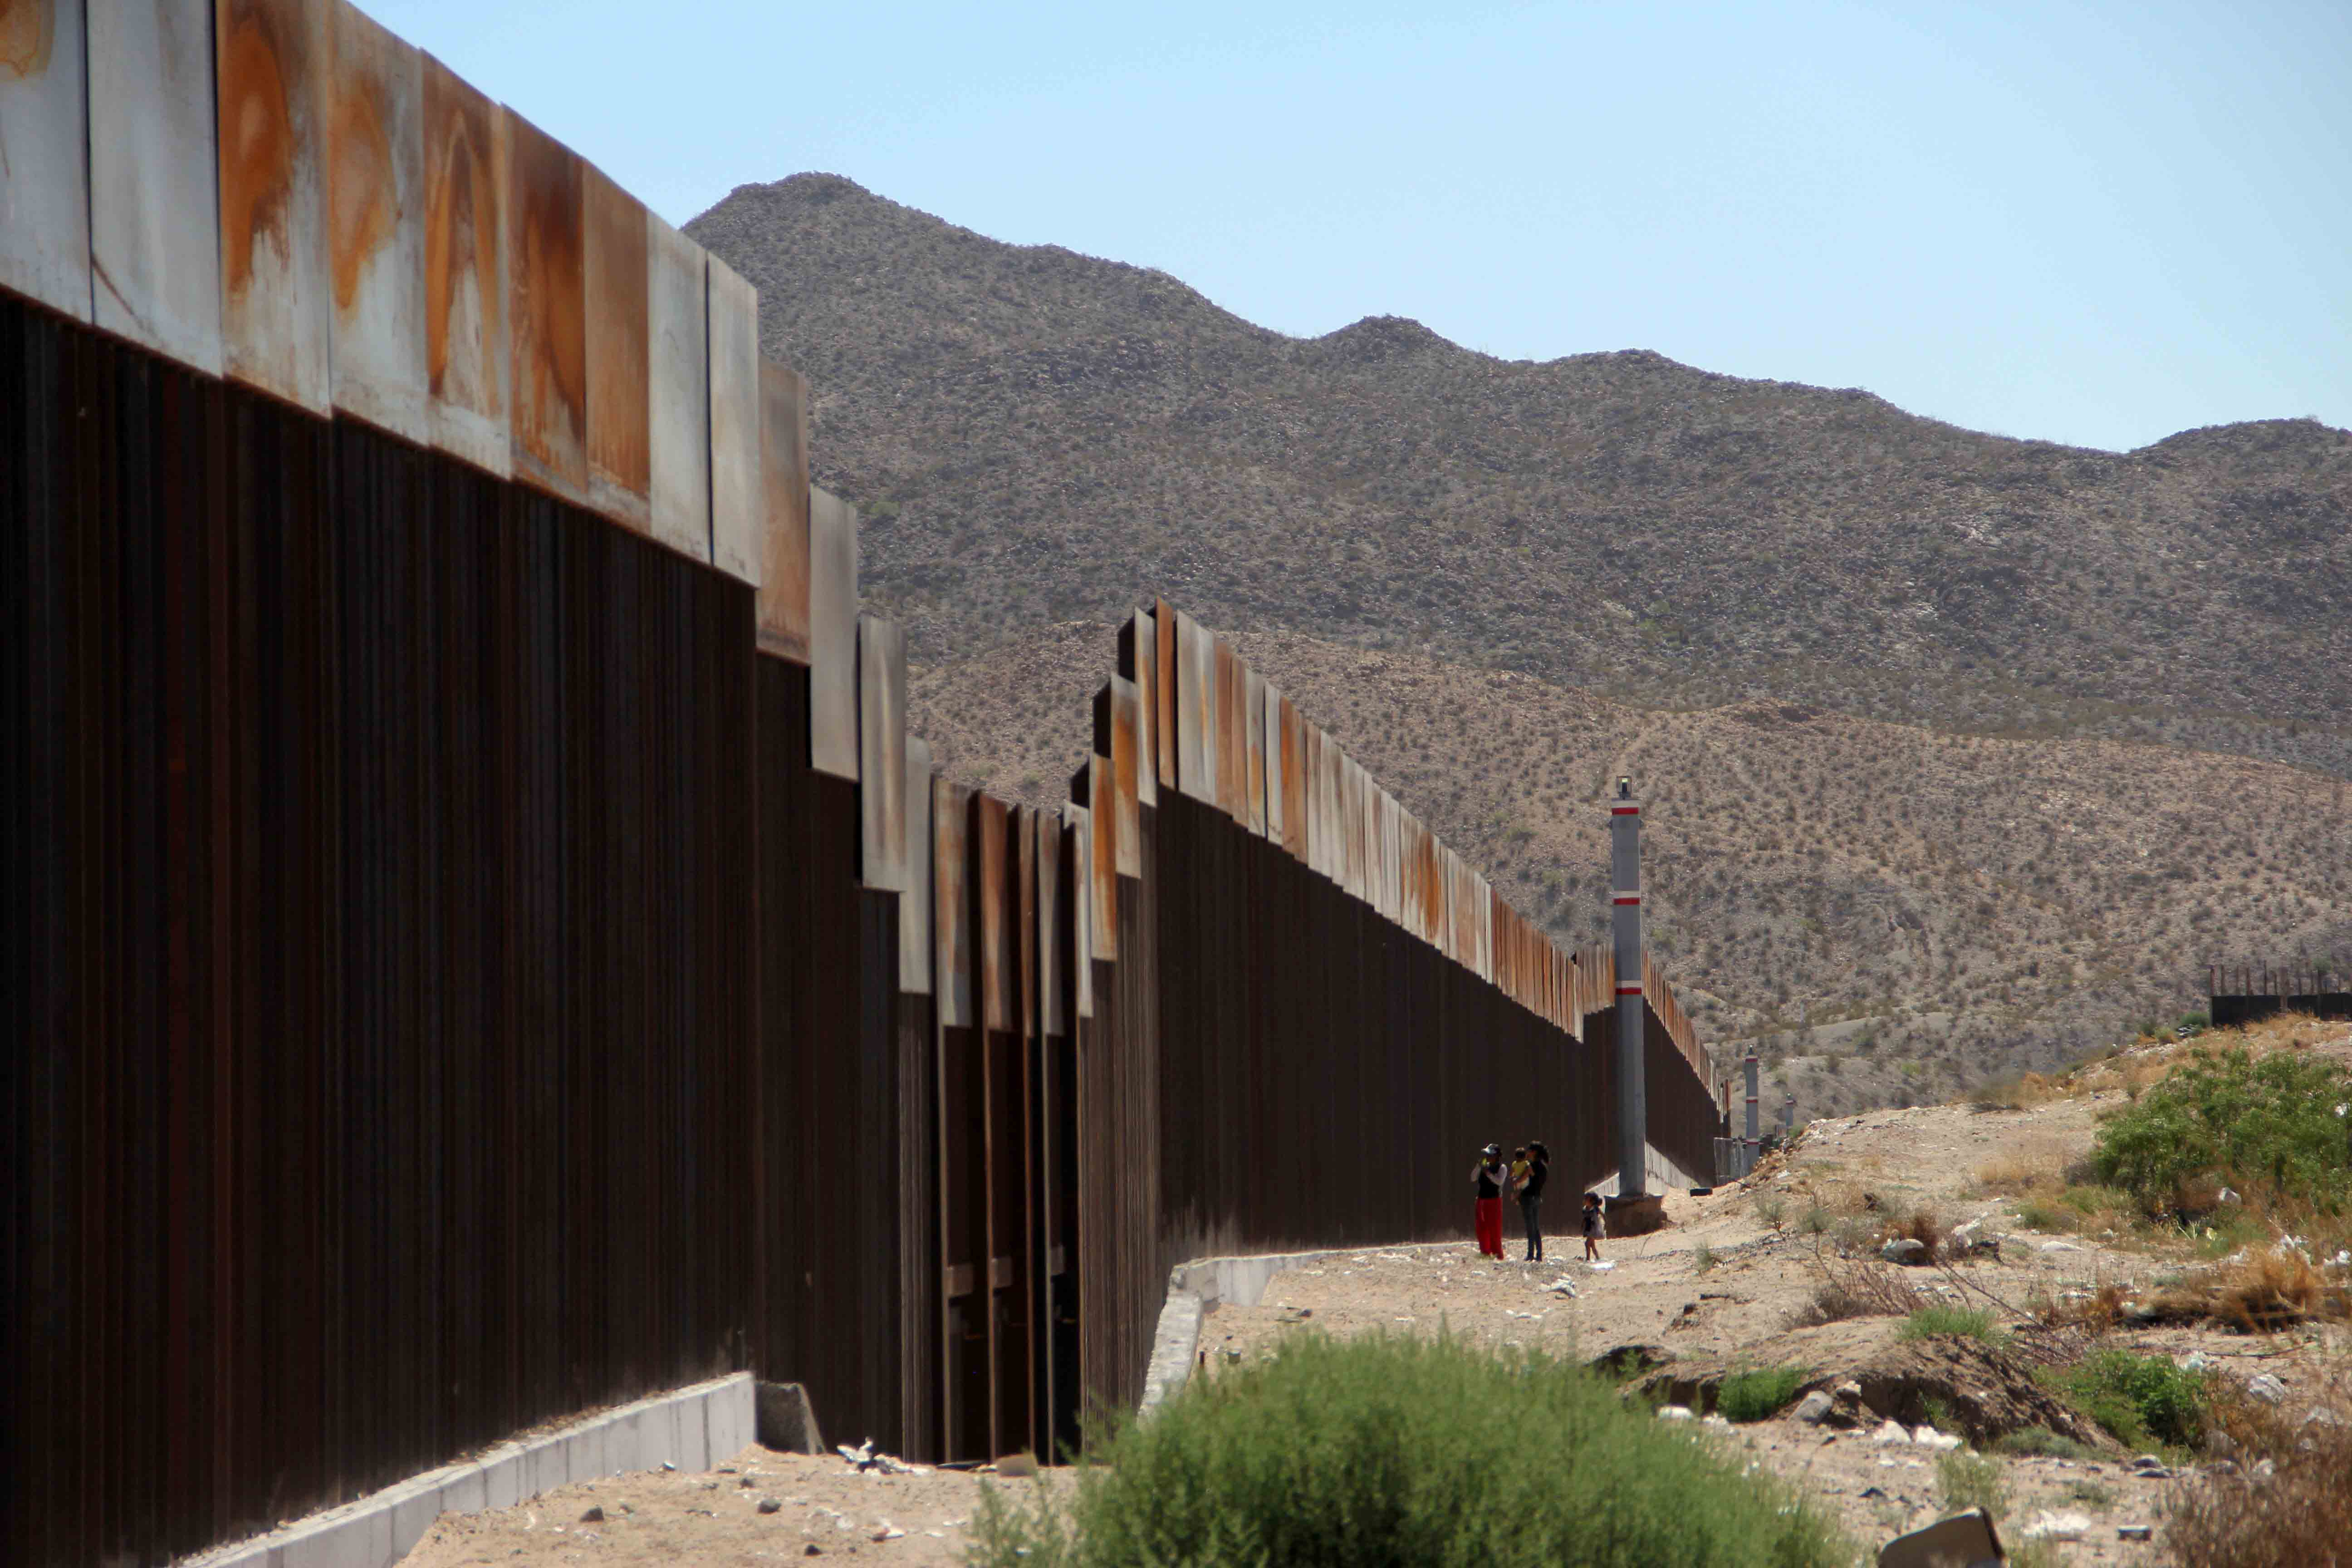 Wall Construction In Us : U s mexico border wall would divide europe in half big